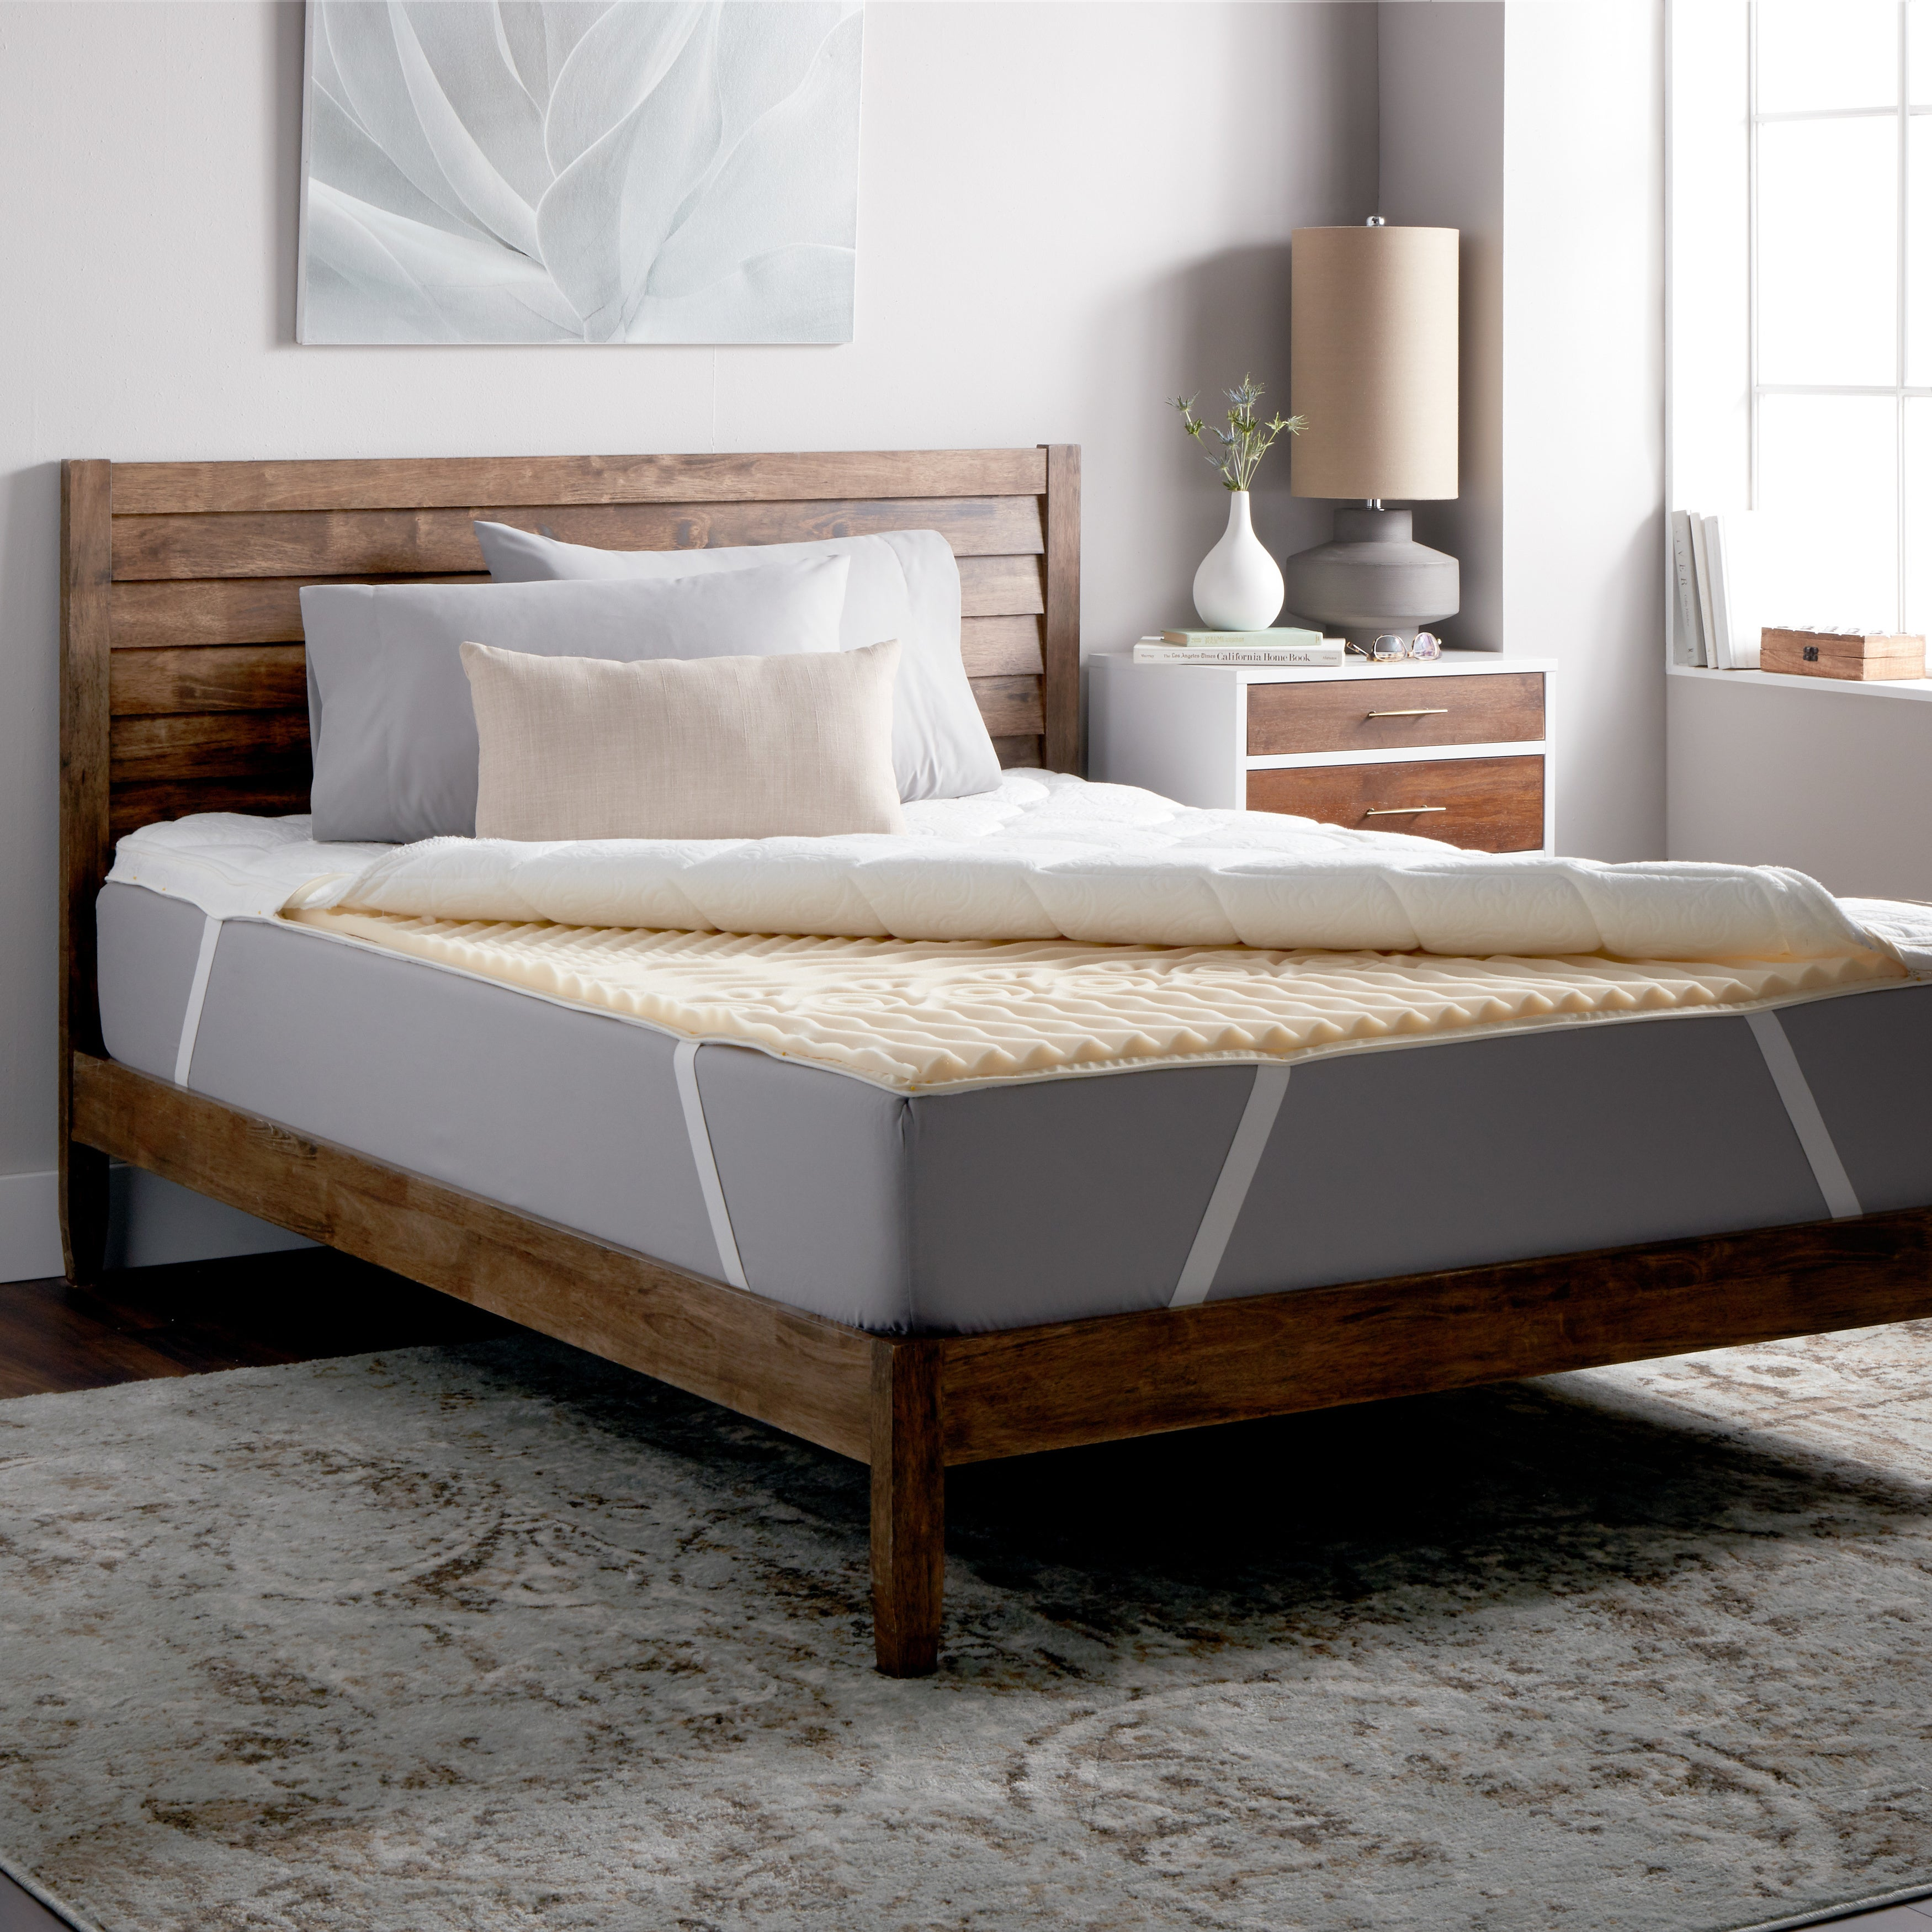 Select Luxury Dream Deluxe Quilted 3.5-inch Zoned Memory Foam Mattress Topper at Sears.com